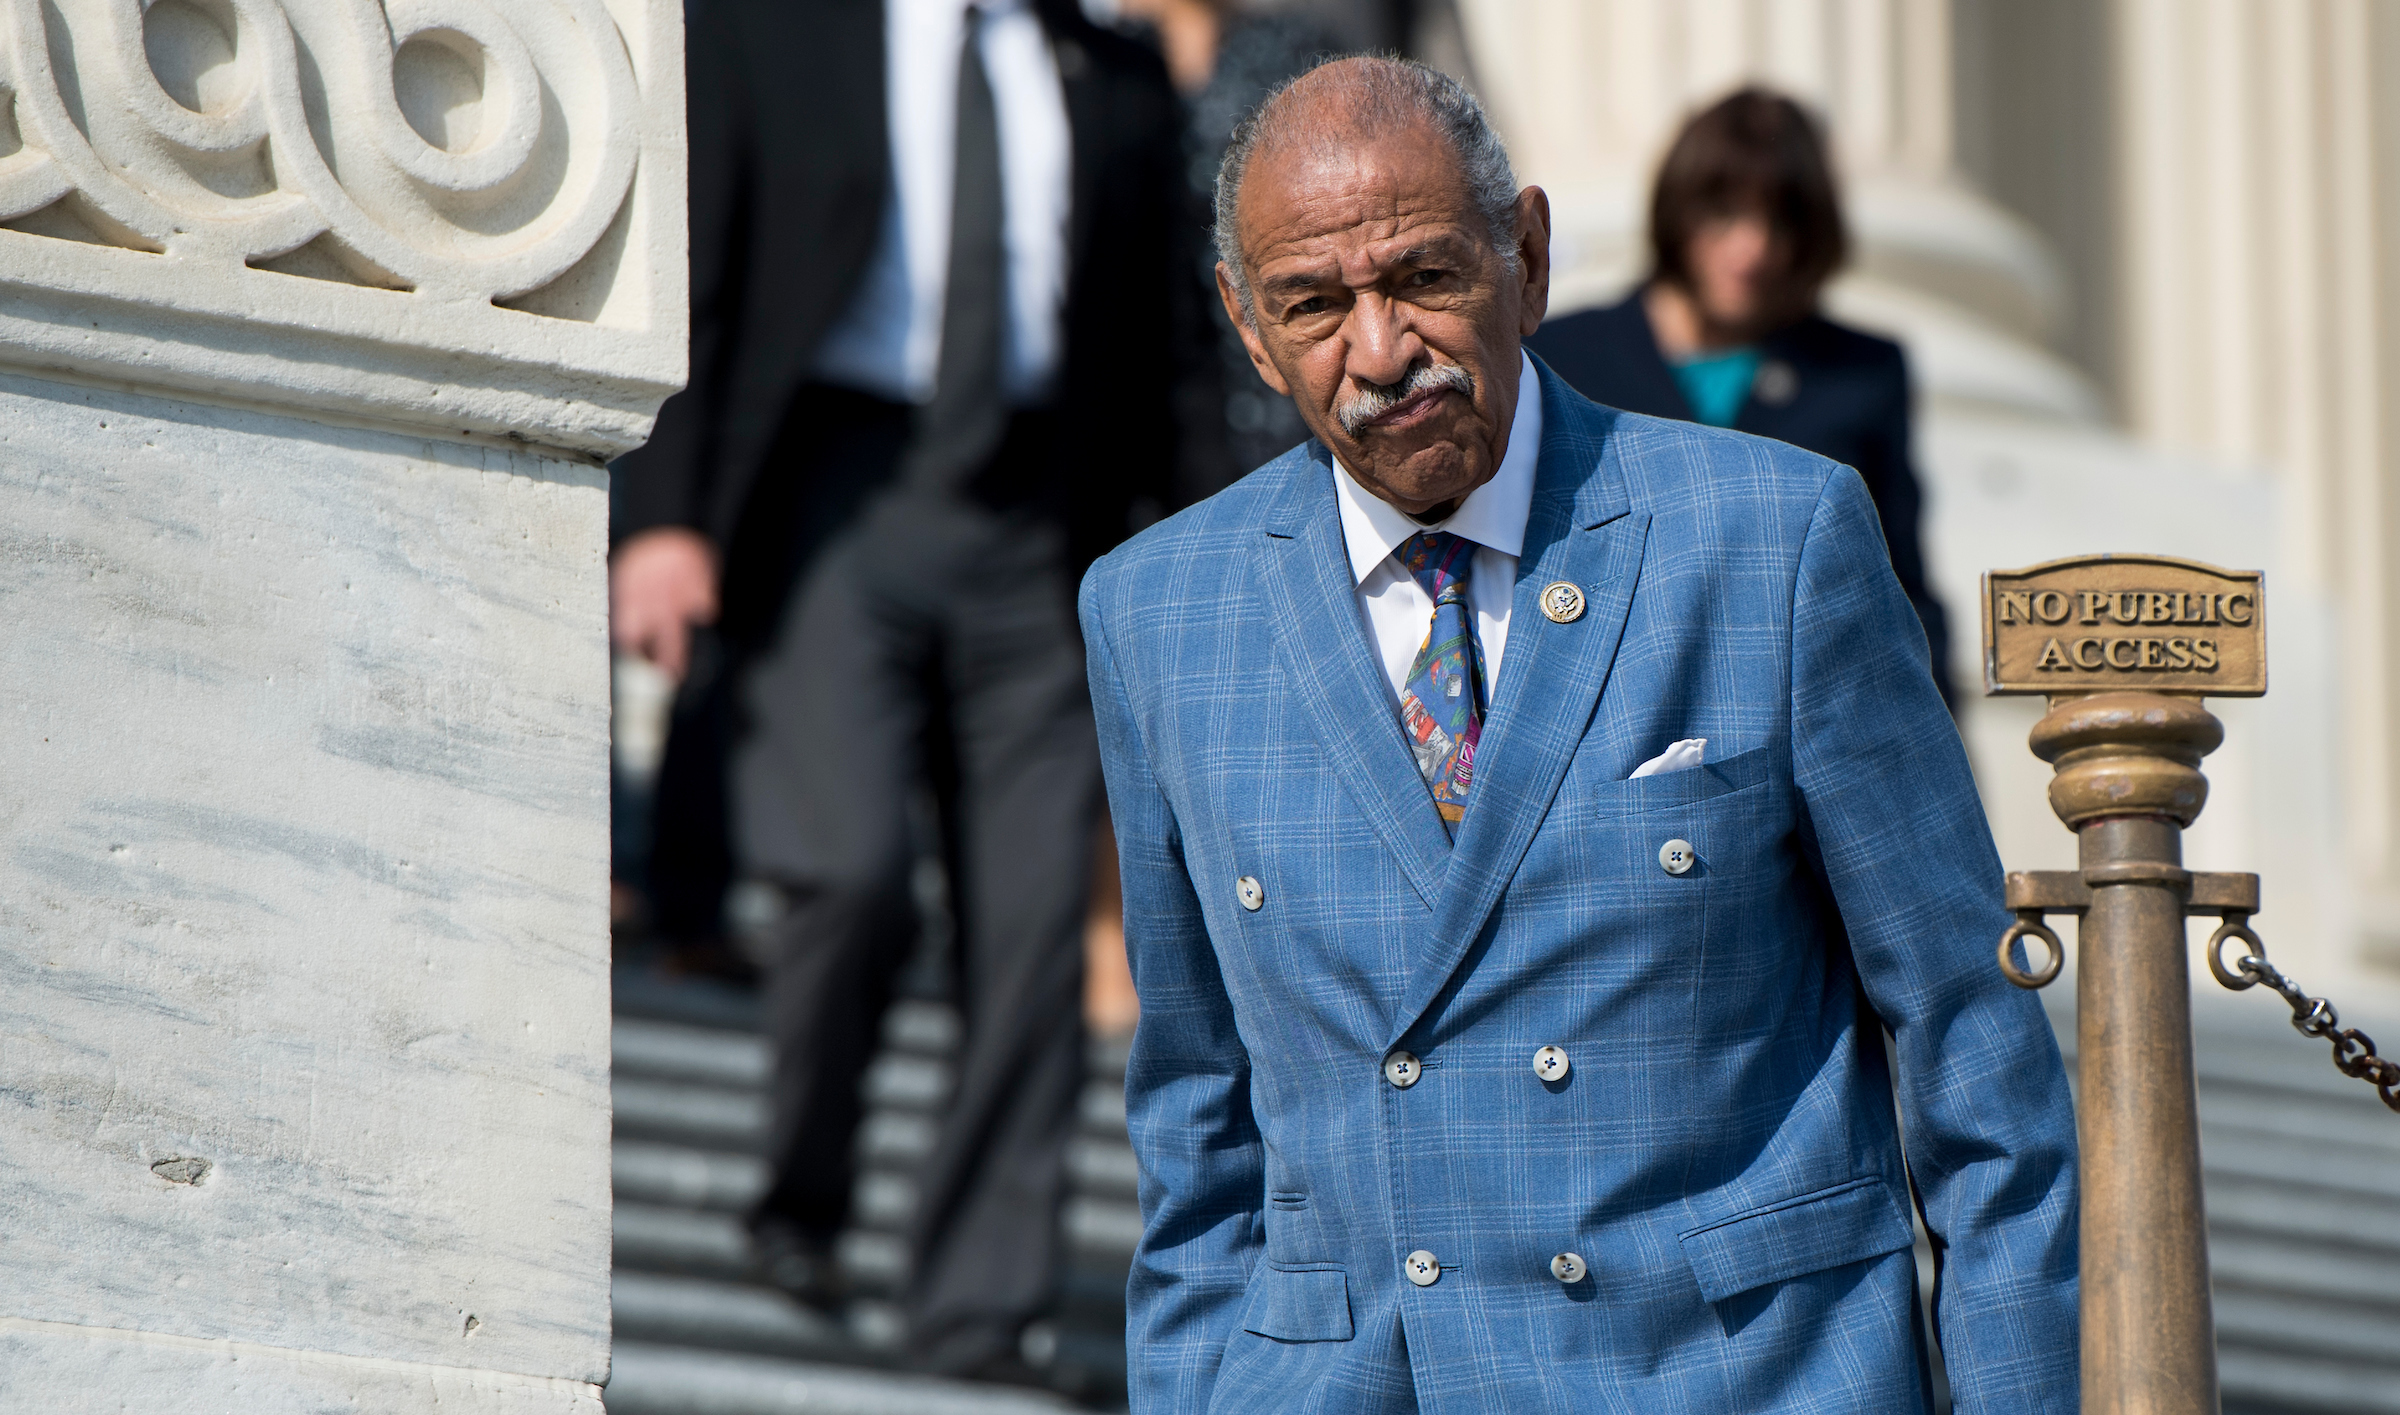 Rep. John Conyers, D-Mich., walks down the House steps after voting in the Capitol. (Bill Clark/CQ Roll Call File Photo)